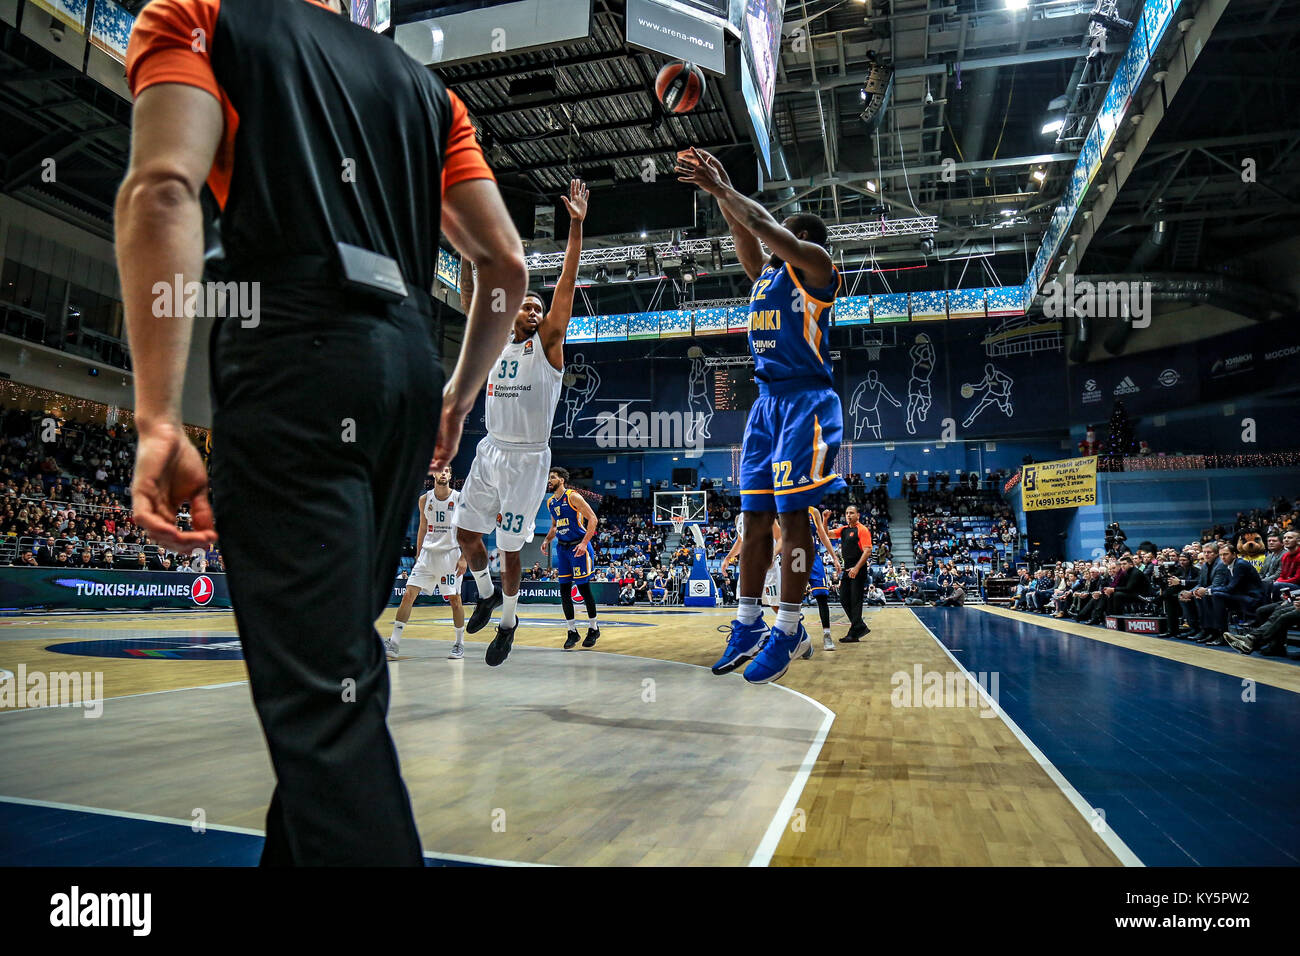 Moscow, Russia. 12th Jan, 2018. Charles Jenkins, #22 of Moscow Khimki shoots a jumpshot against Trey Thompkins, - Stock Image